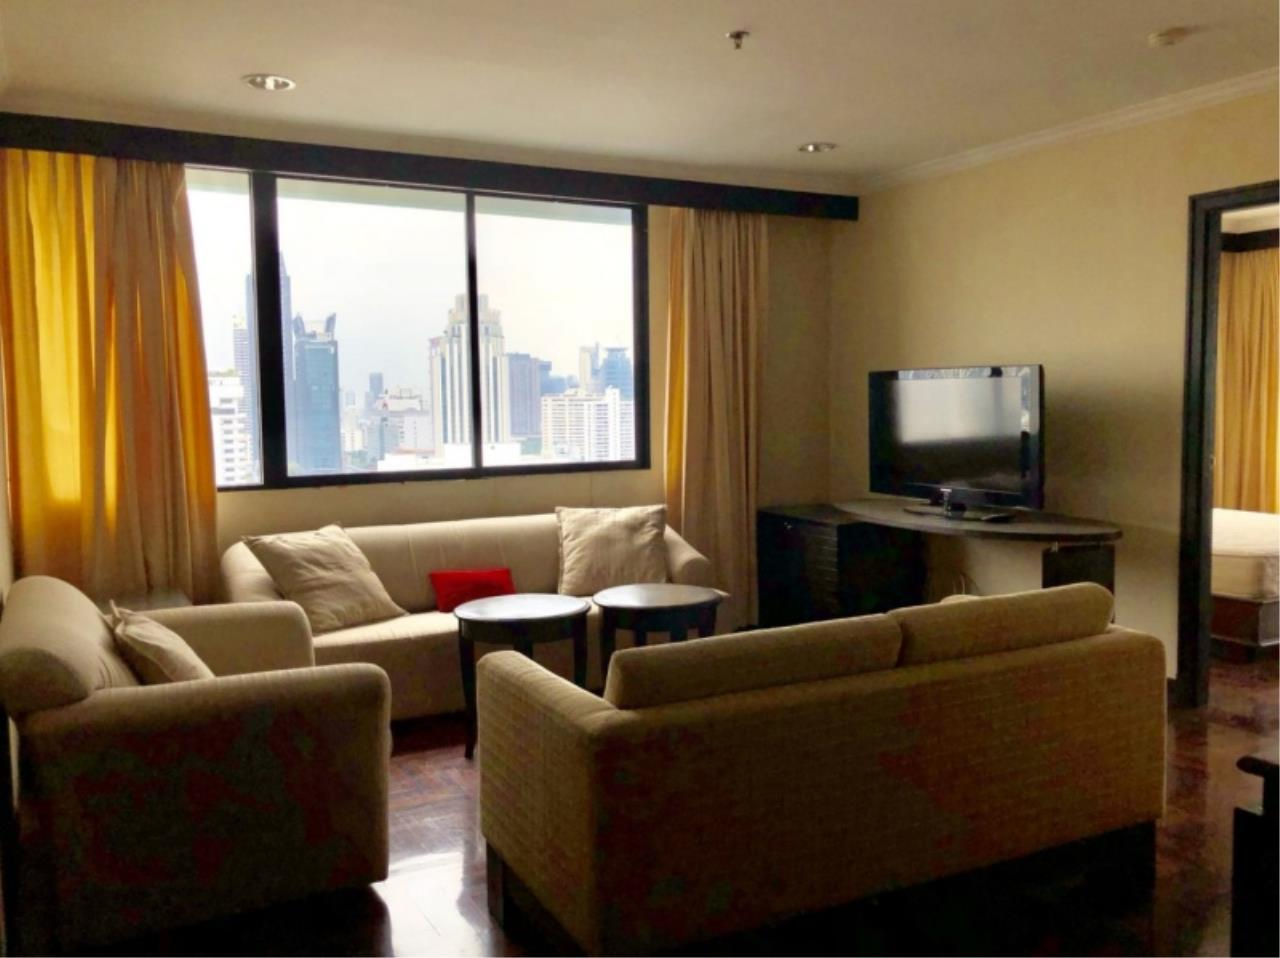 Century21 Skylux Agency's Lake Green / Condo For Rent / 2 Bedroom / 135.04 SQM / BTS Nana / Bangkok 1